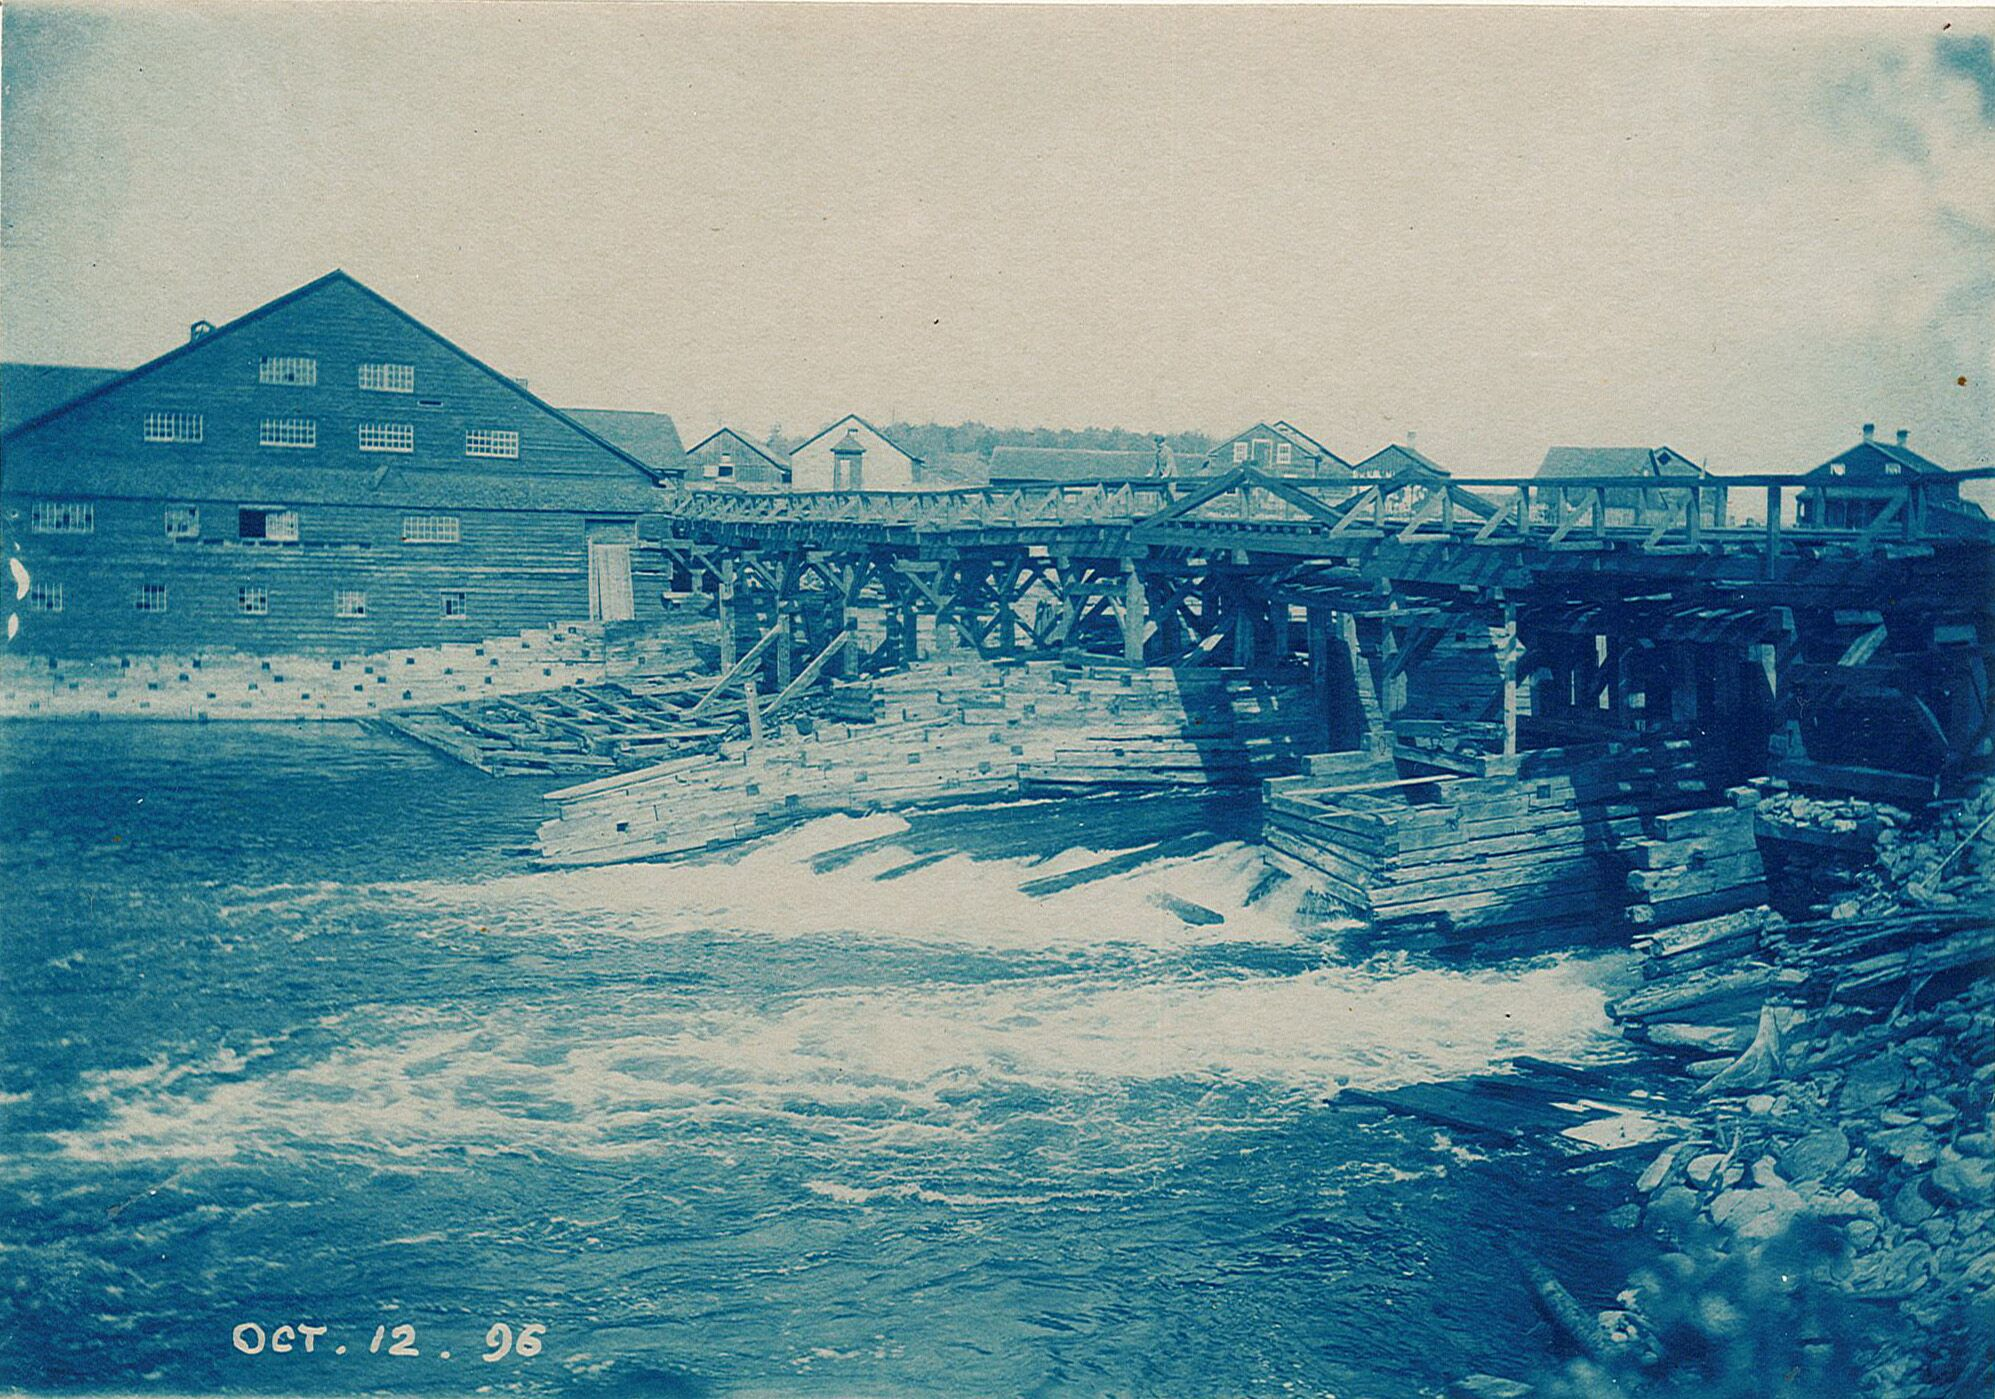 Nassau Dam & Mill, Oct 12.1896. Photo provided courtesy of Trent University Archives from the Geale-Rogers Family Fonds